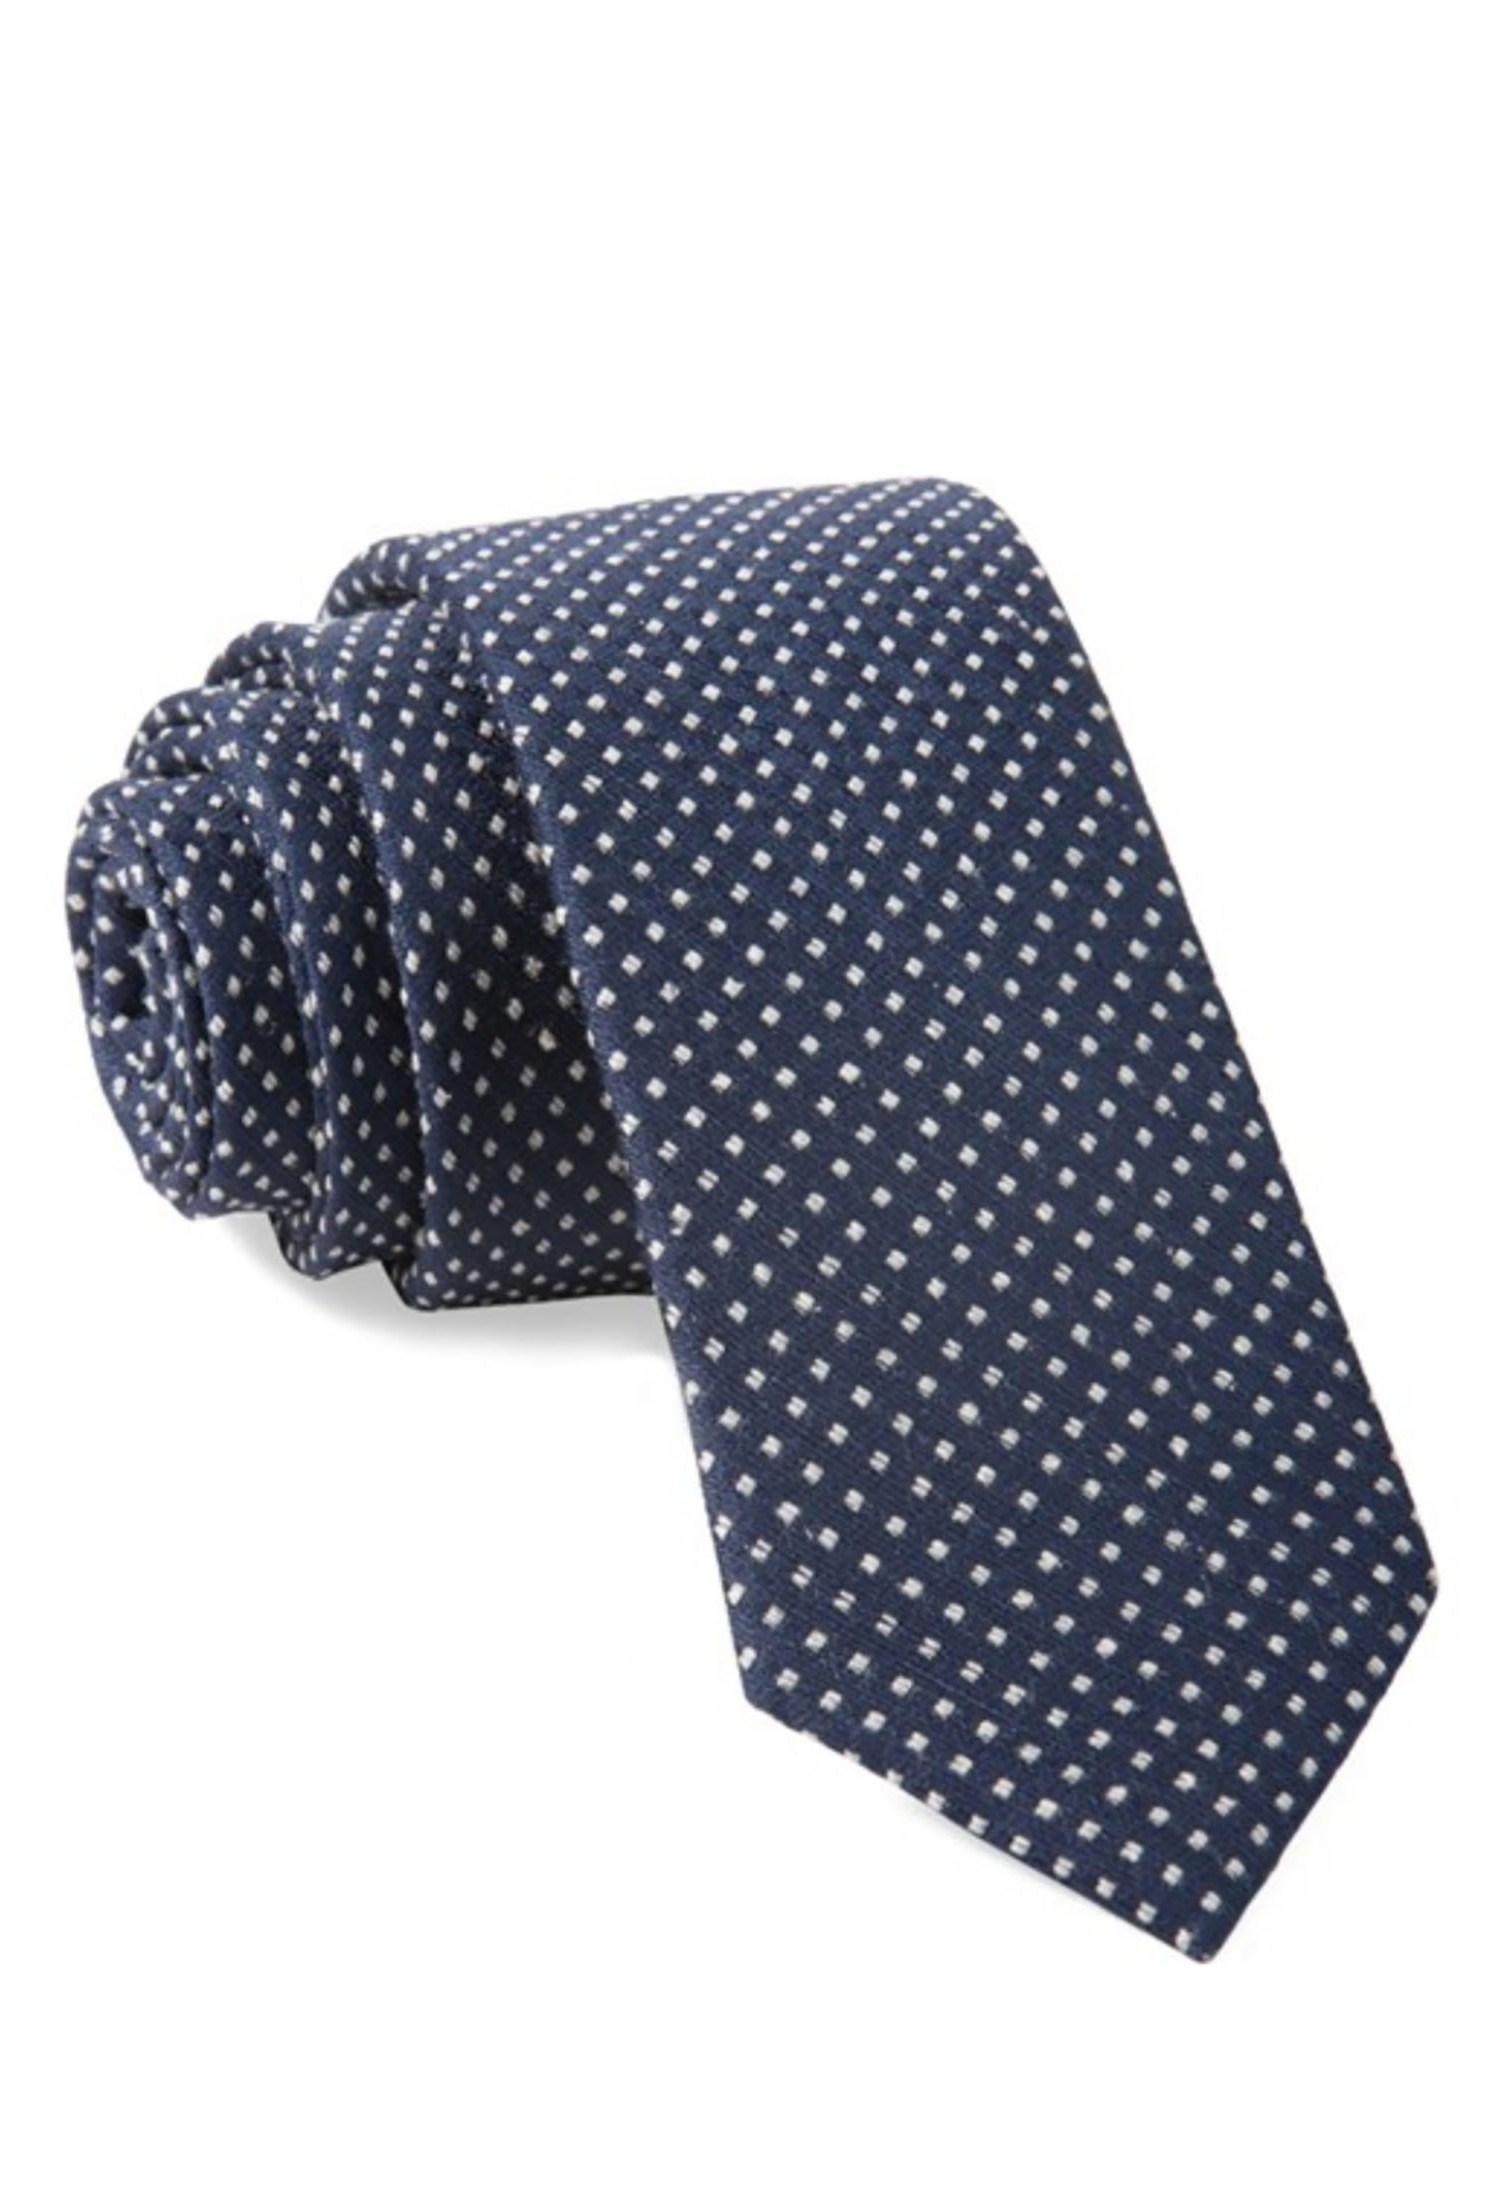 Green Wedding Shoes x The Tie Bar Groom Style Tie Chambray Polka Dot Navy Blue